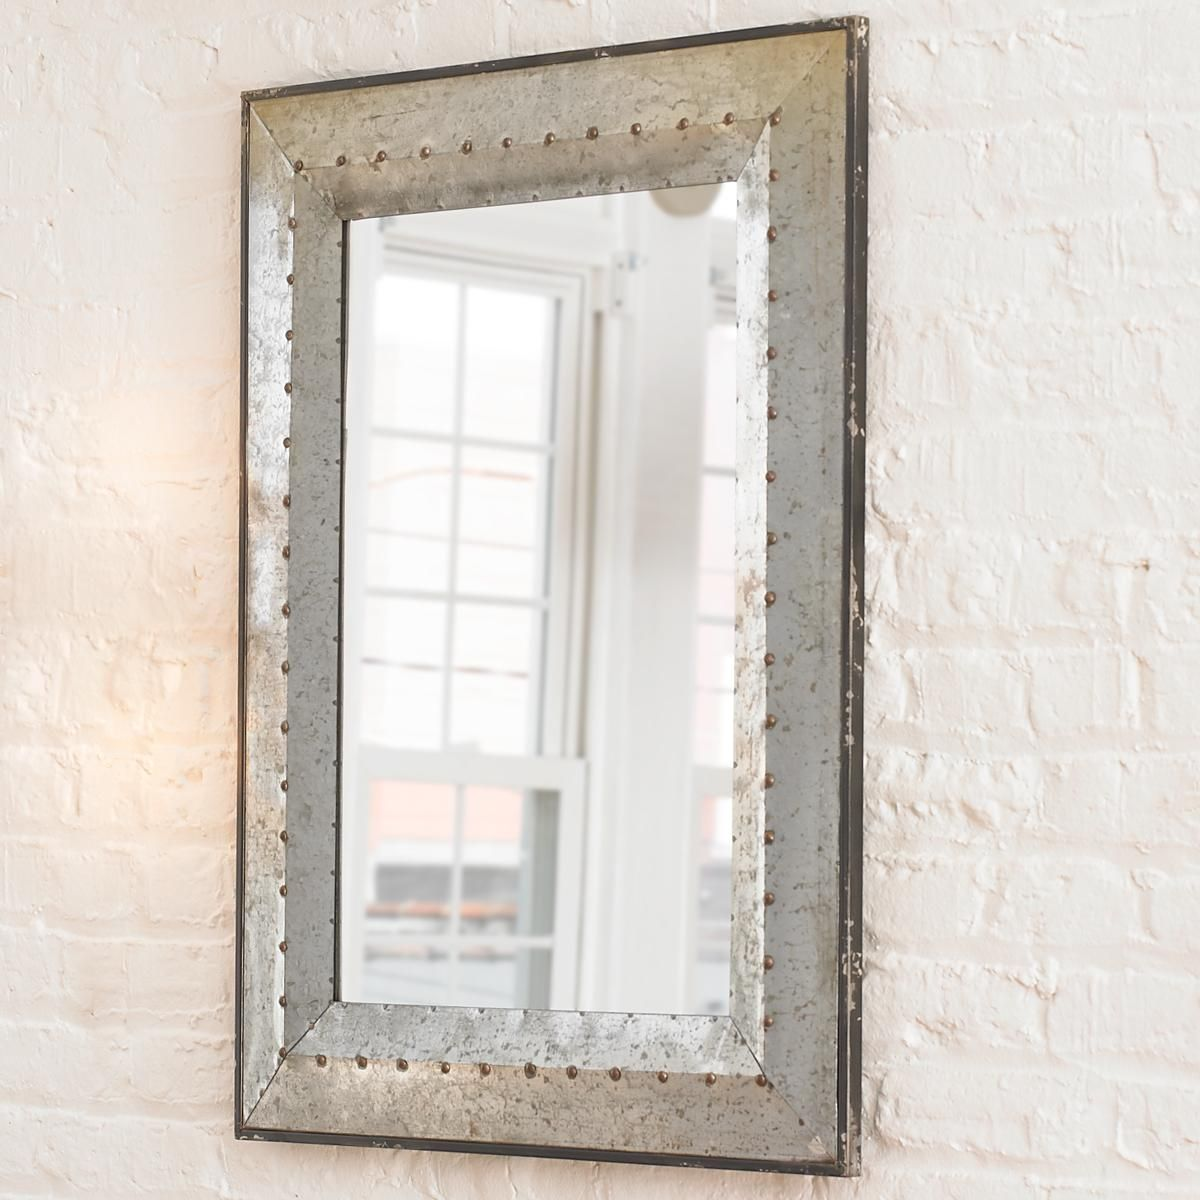 Metal Industrial Rivet Mirror